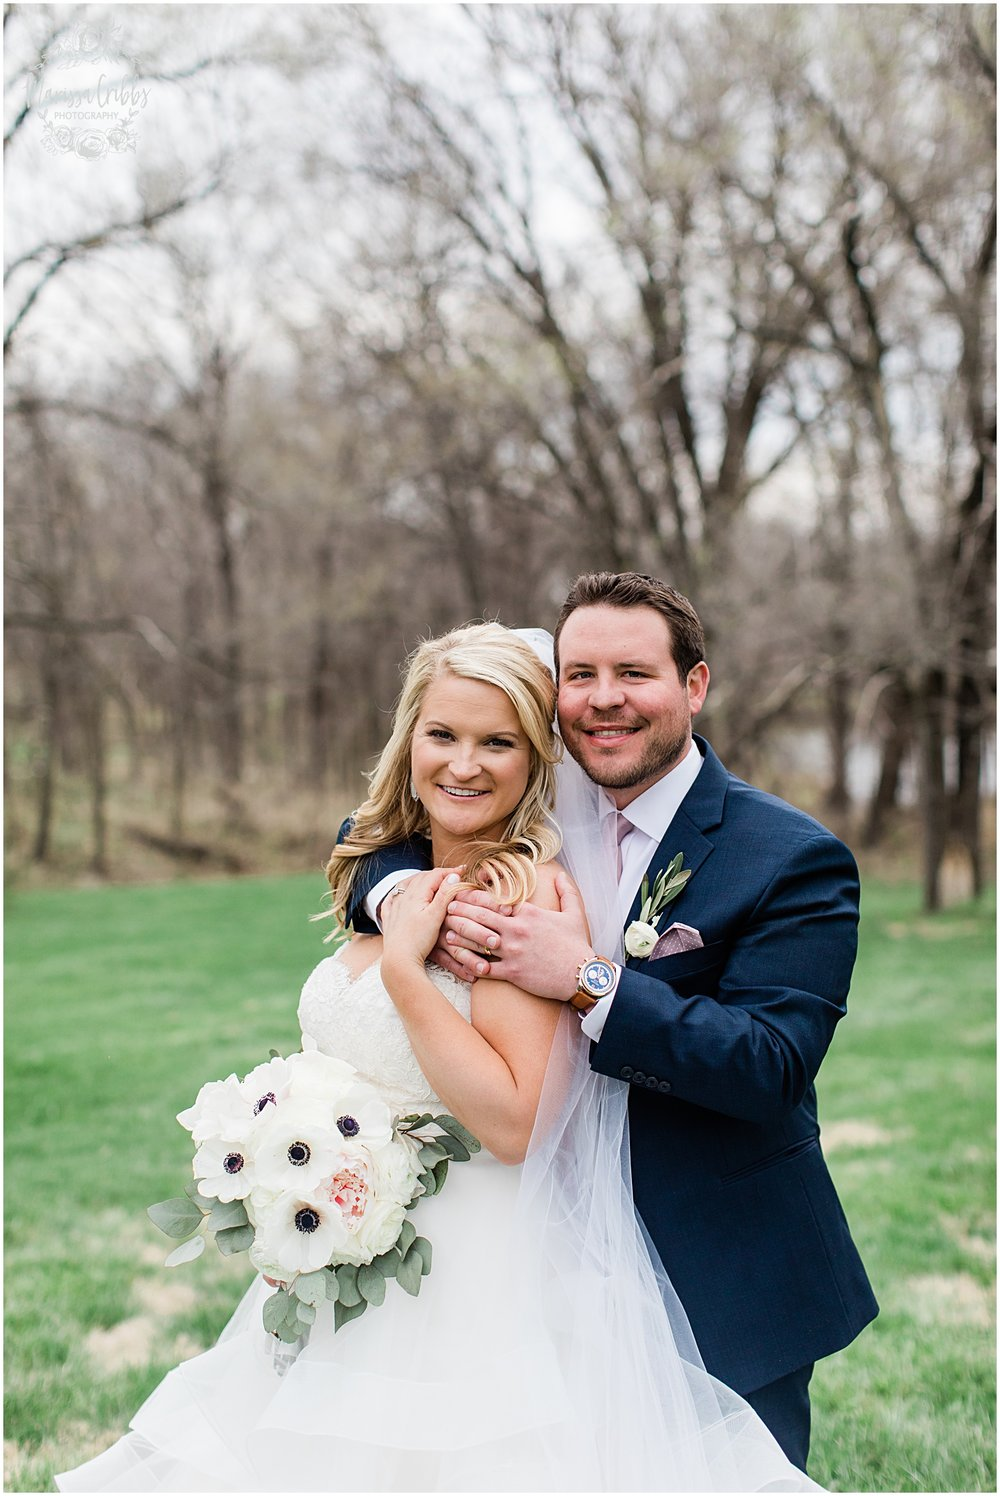 TILSON WEDDING | THE LEGACY AT GREEN HILLS | SIMPLE ELEGANCE | MARISSA CRIBBS PHOTOGRAPHY_4732.jpg